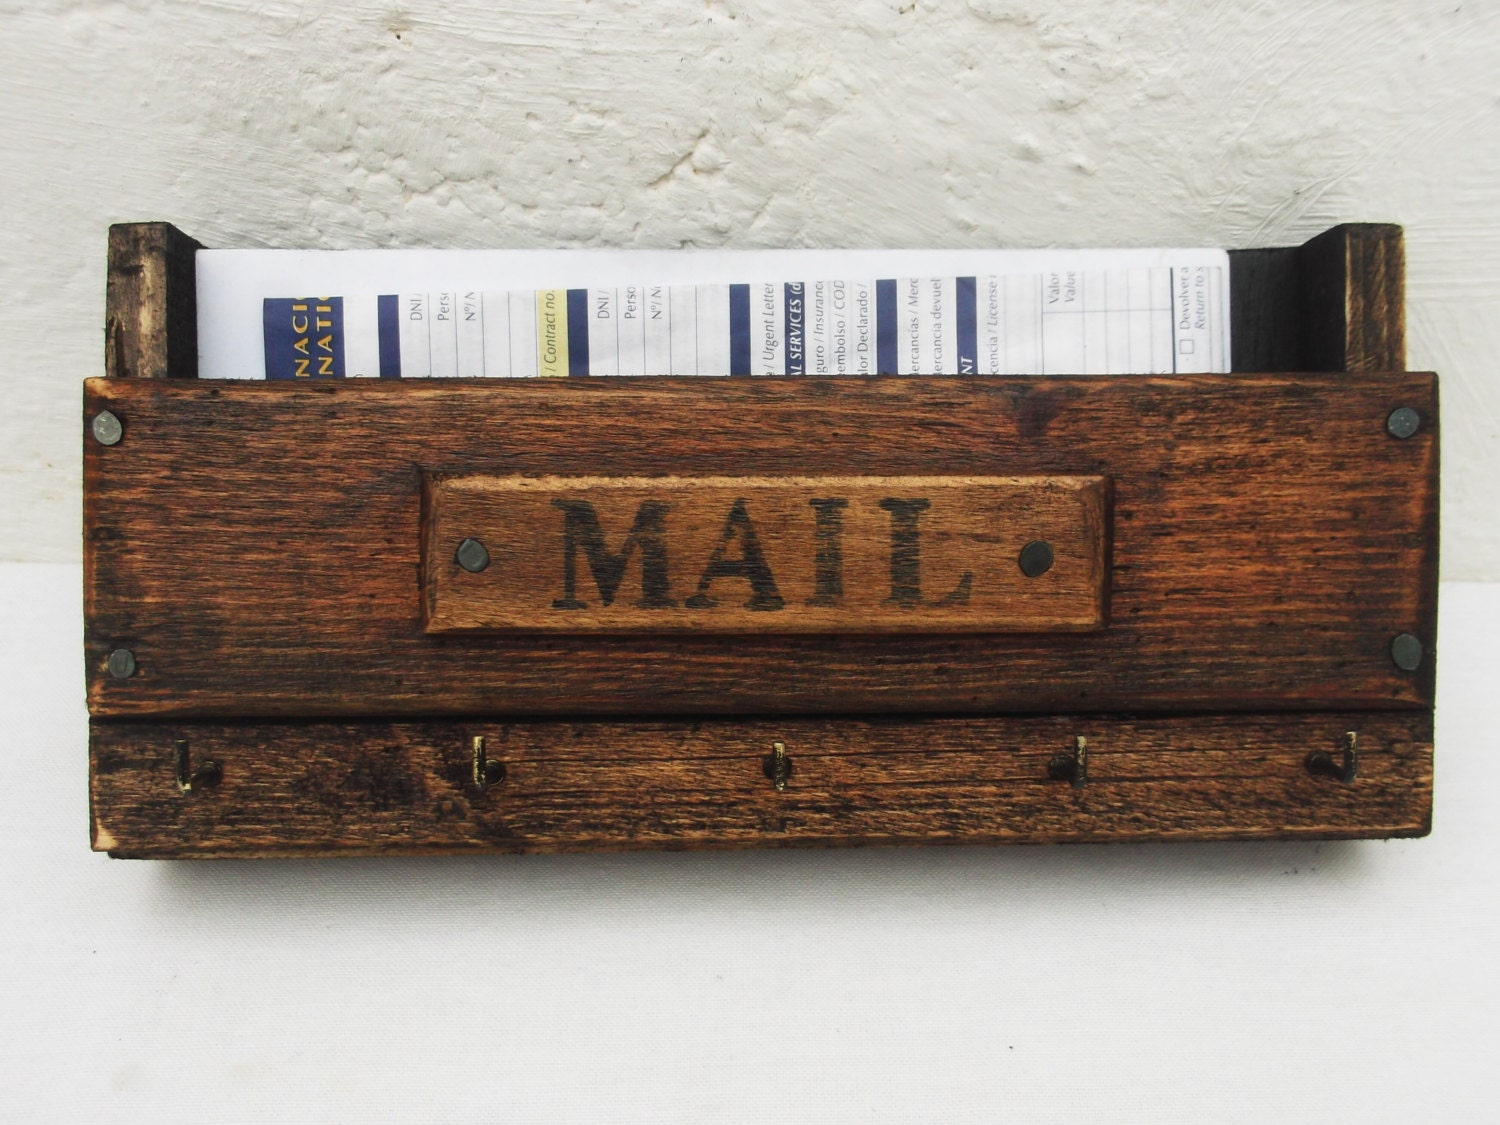 Wall mail organizer and key rack wooden wall mounted mail - Wall mounted mail organizer and key rack ...